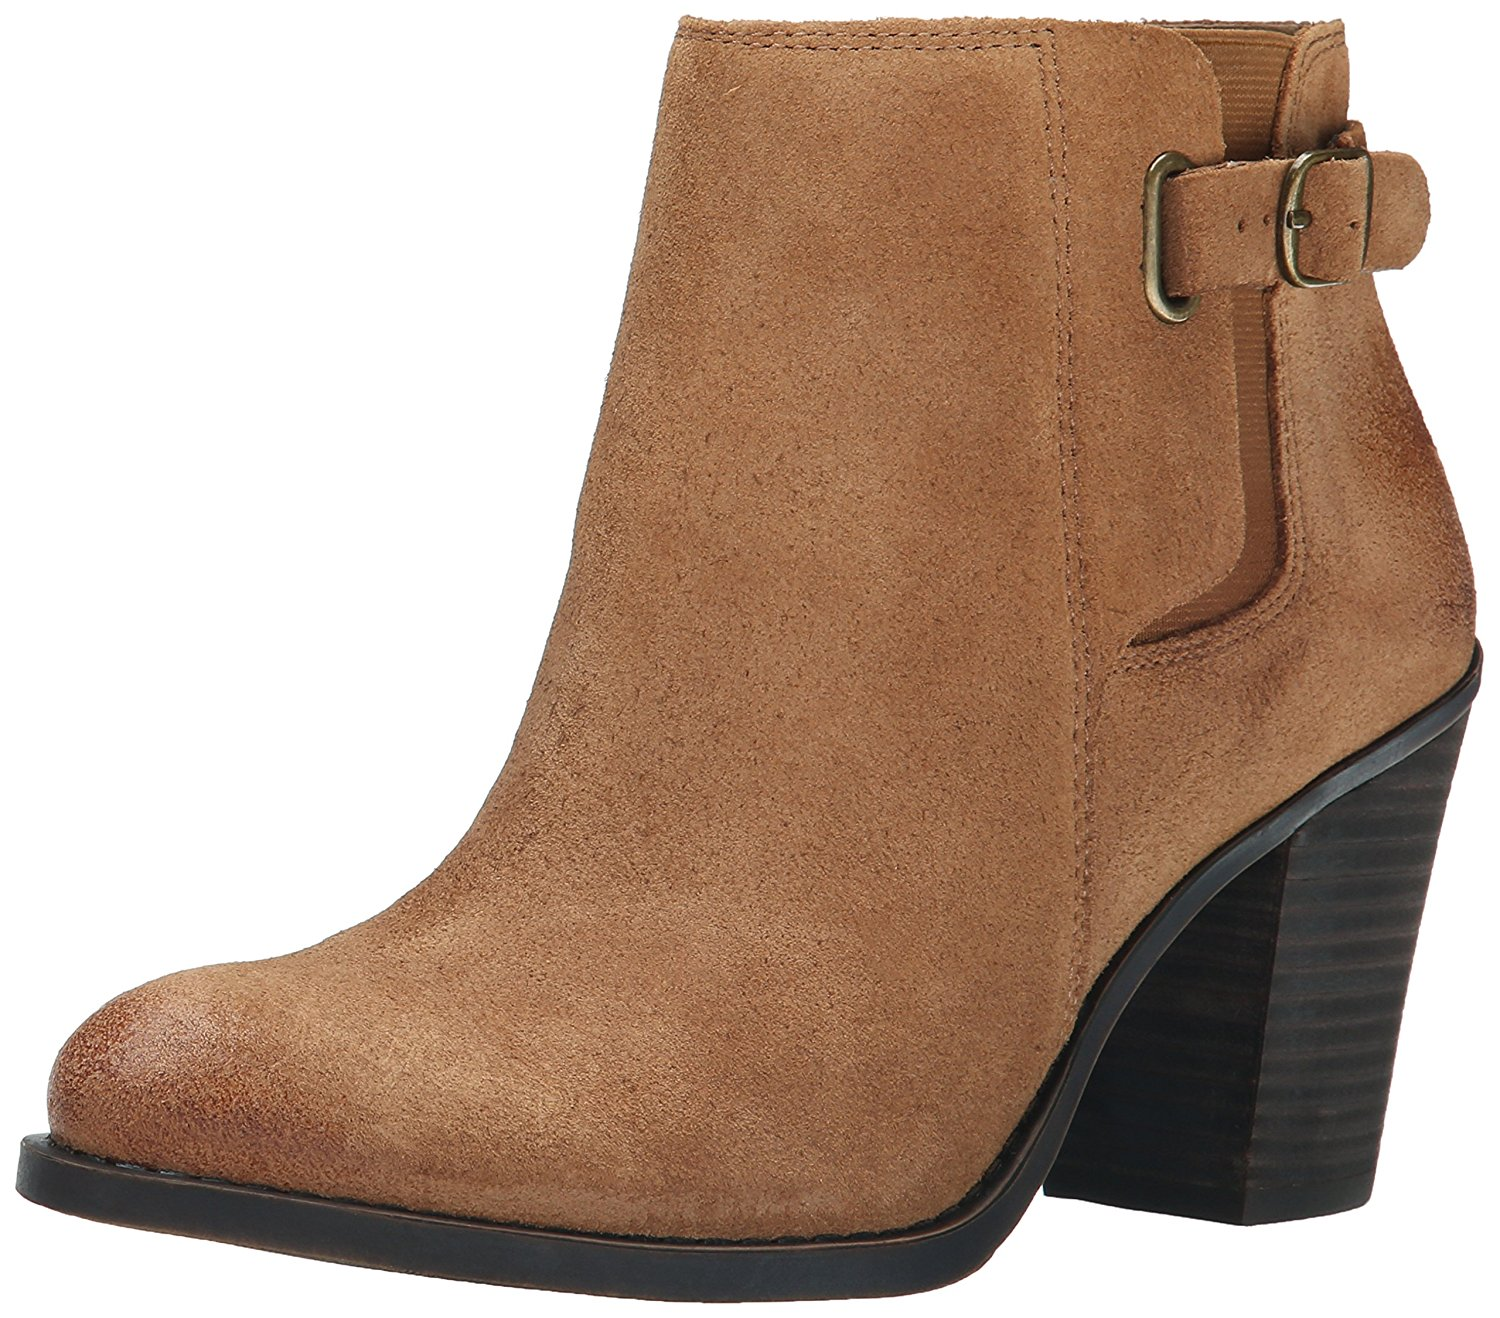 Lucky Brand Womens Esperanza Closed Toe Ankle Fashion Boots, Aztec, Size 8.5